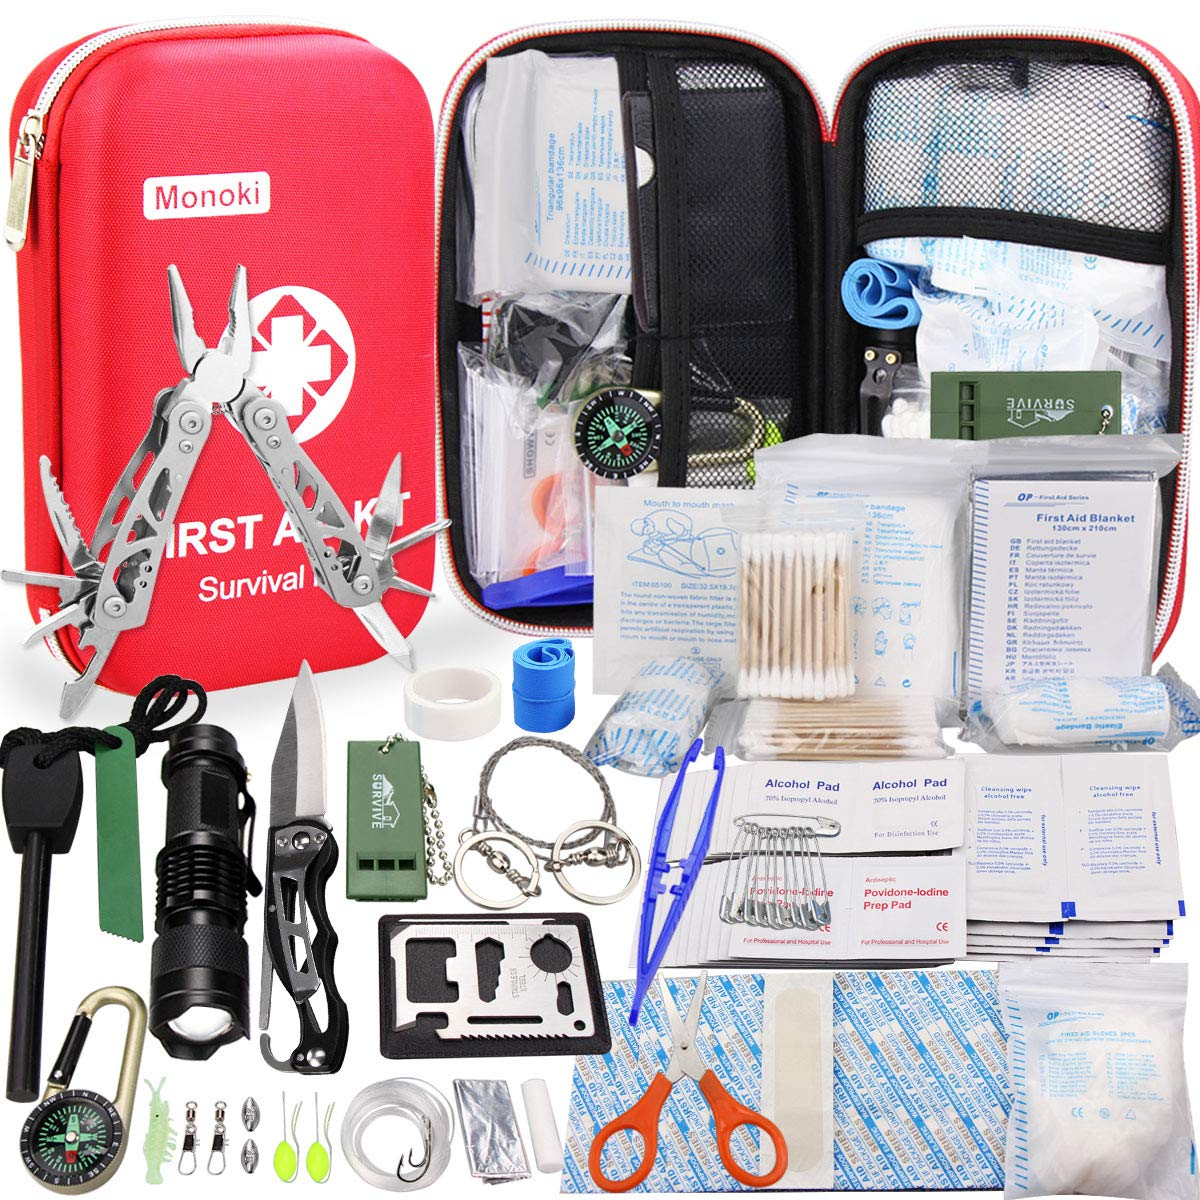 Monoki First Aid Kit Survival Kit, 241Pcs Upgraded Outdoor Emergency Survival Kit Gear - Medical Supplies Trauma Bag Safety First Aid Kit for Home Office Car Boat Camping Hiking Hunting Adventures by Monoki